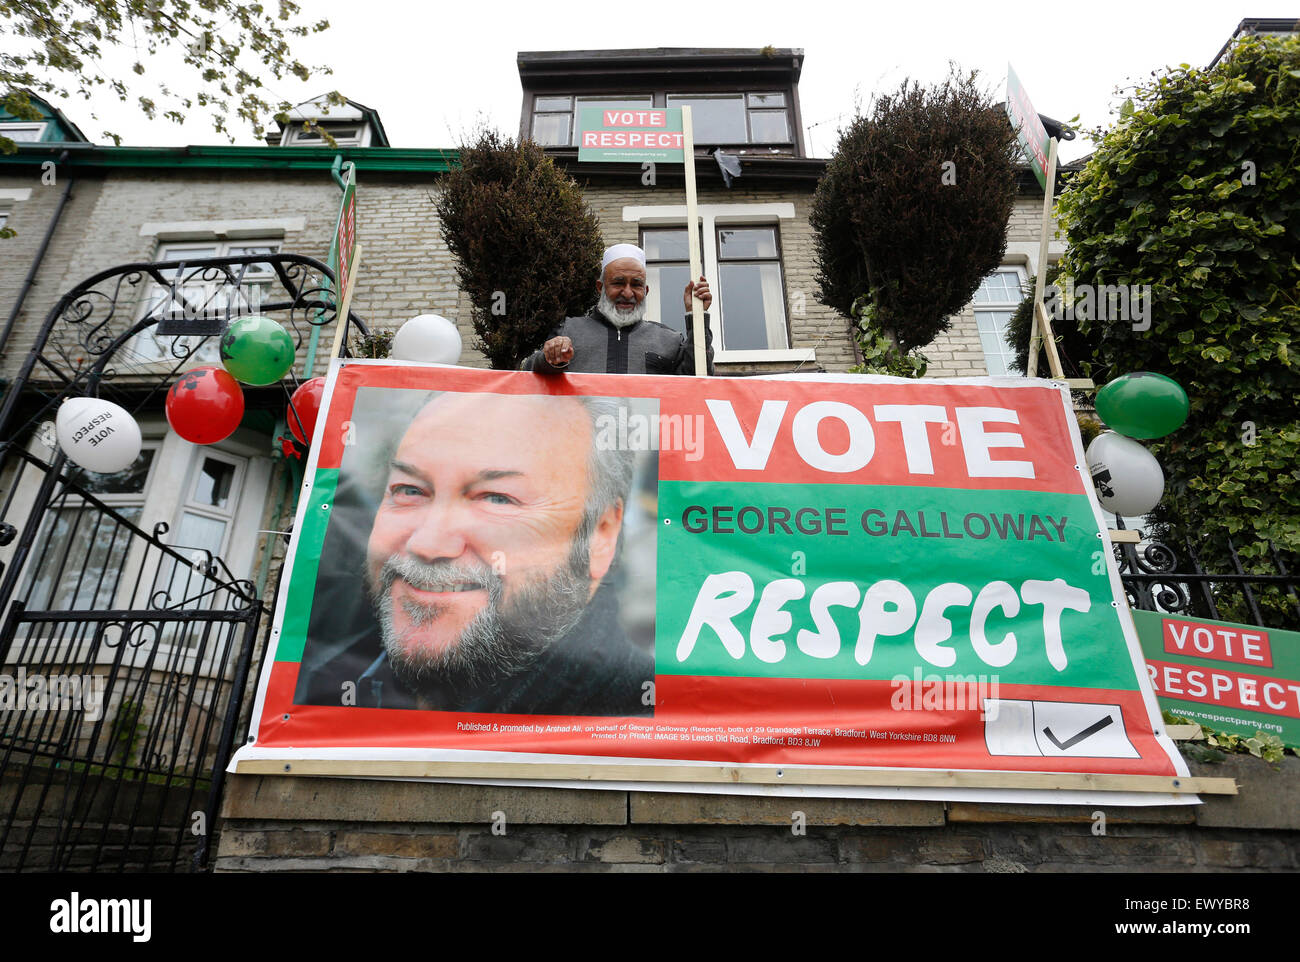 Image result for RESPECT political party george galloway images